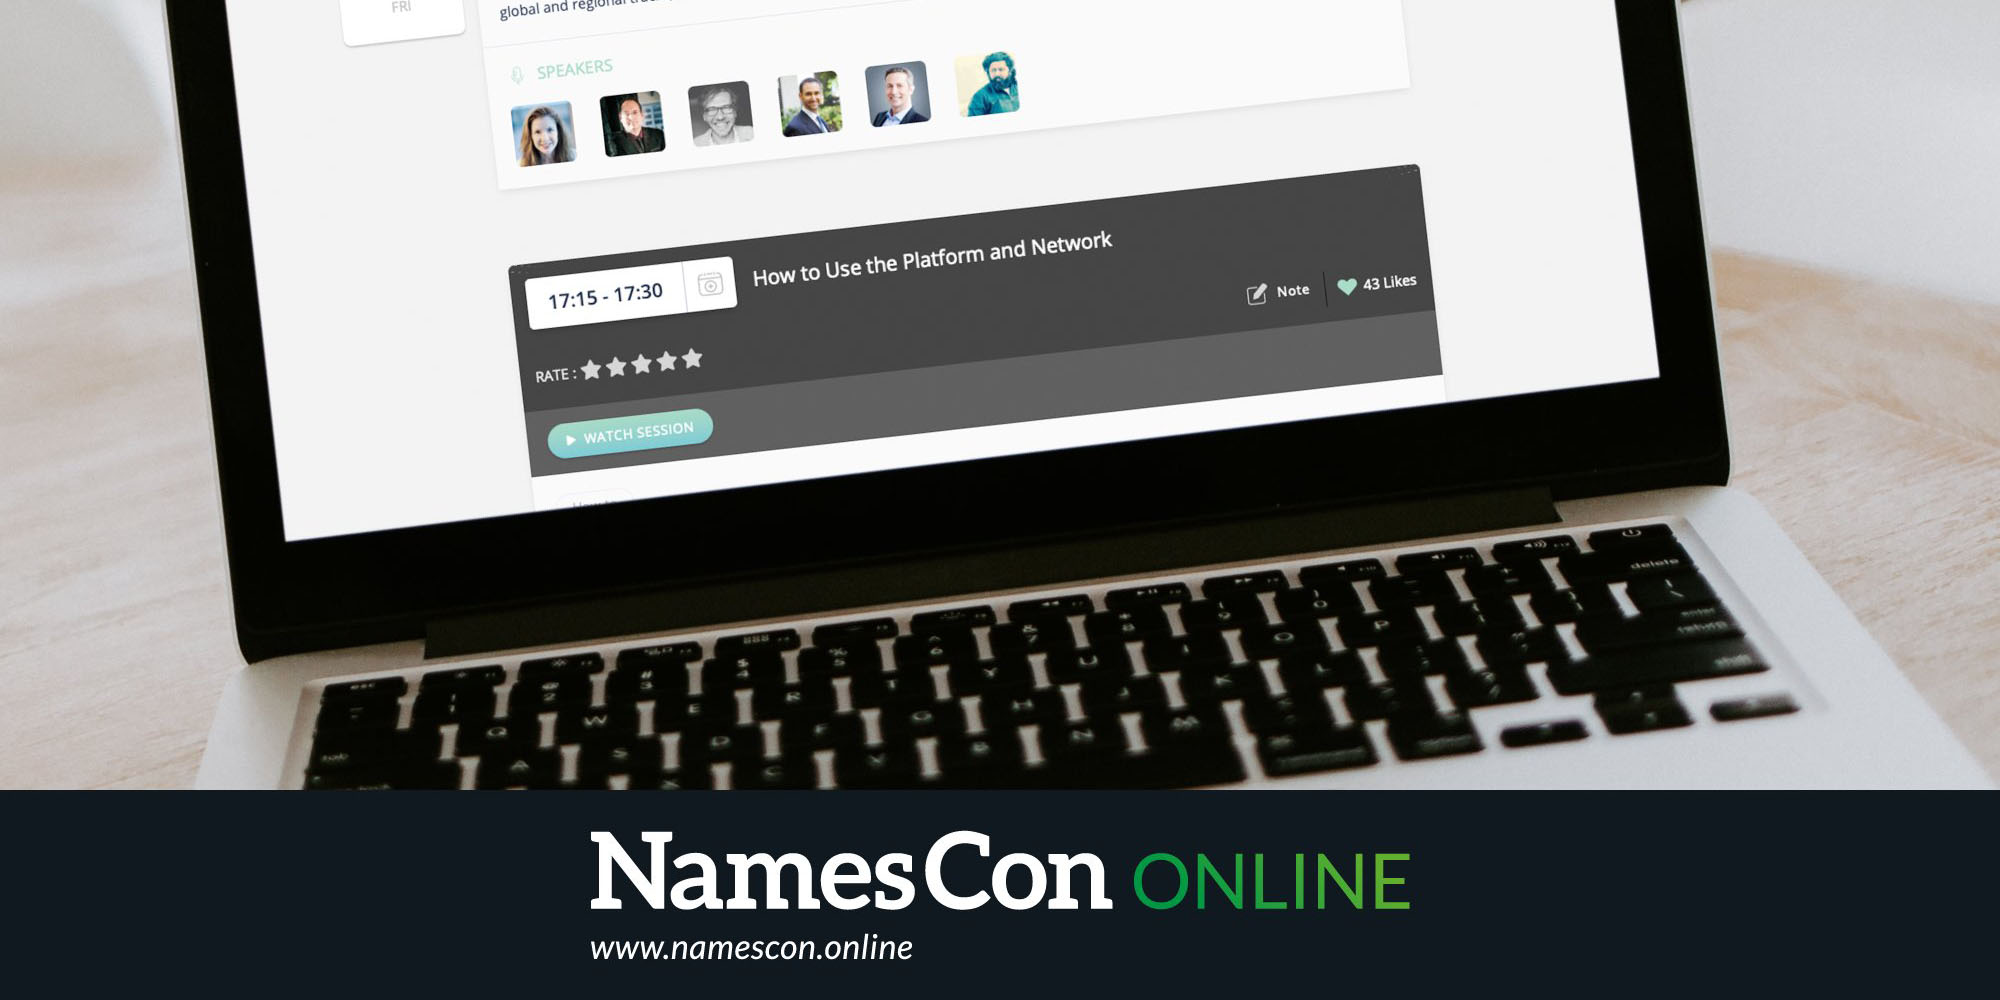 Namescon Online 2020 Review - The First Major Online-Only Domain Industry Conference